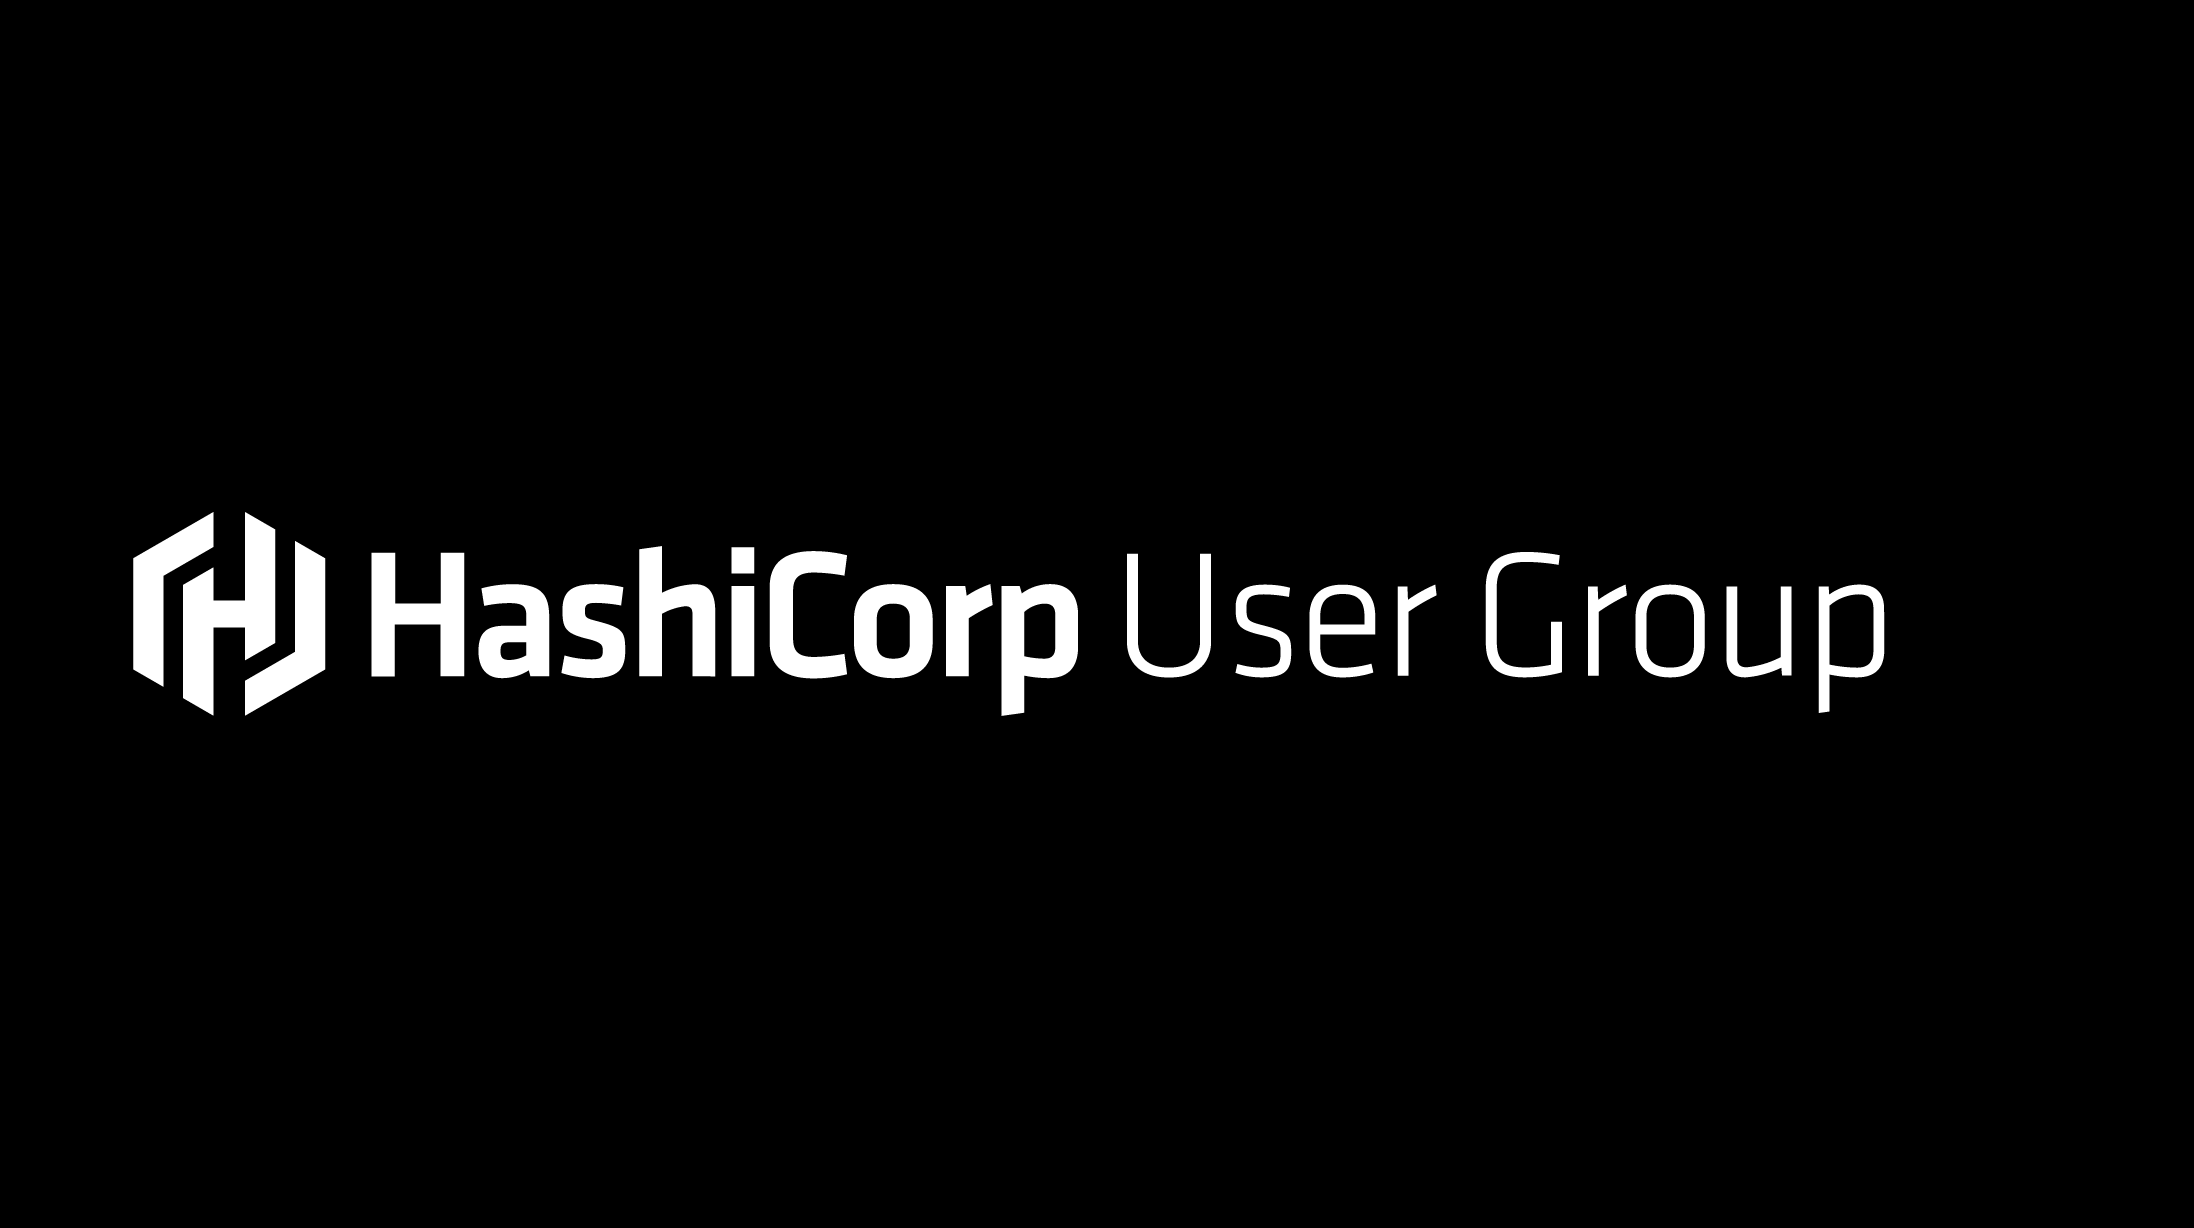 Building Richer Interactions in the HashiCorp Community